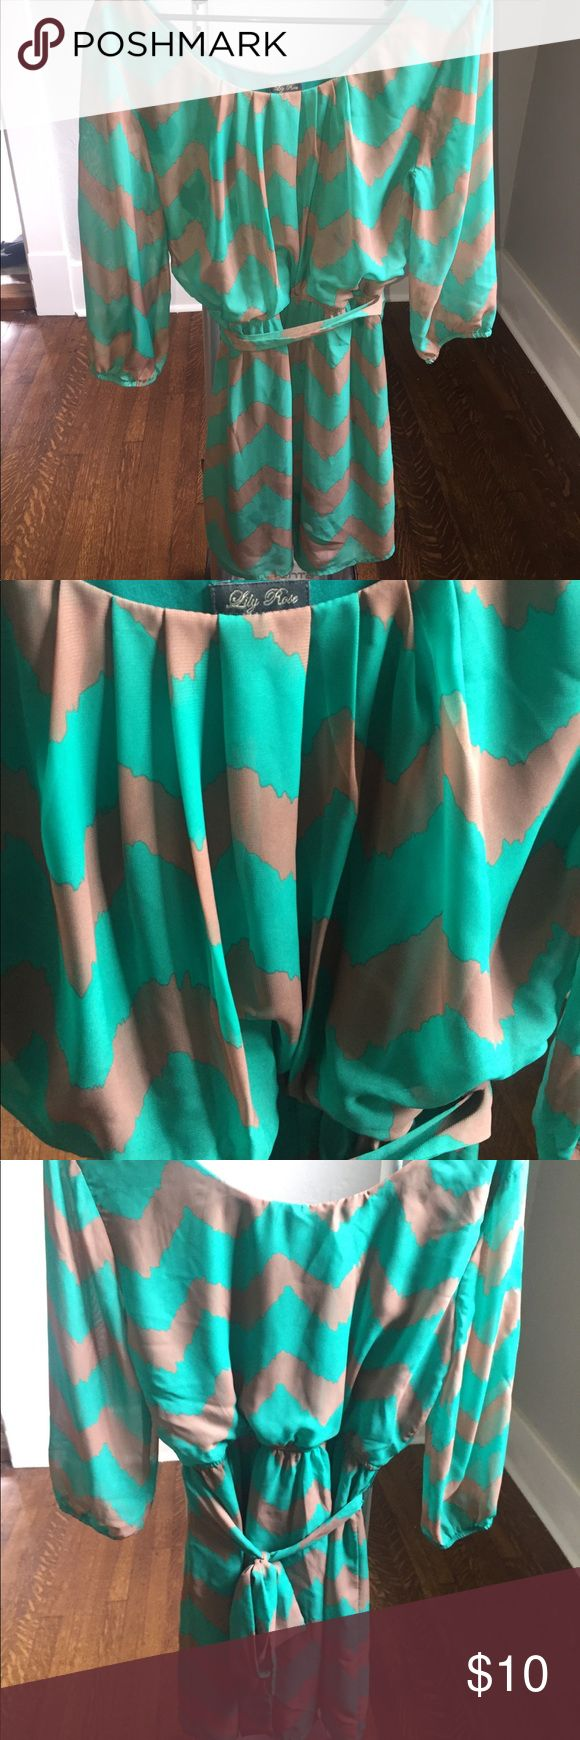 Lily Rose Turquoise and Tan Chevron Print Dress Lily Rose size medium turquoise and tan chevron print dress. Tie in back. Worn once. Stretchy waist. Lily Rose Dresses Long Sleeve